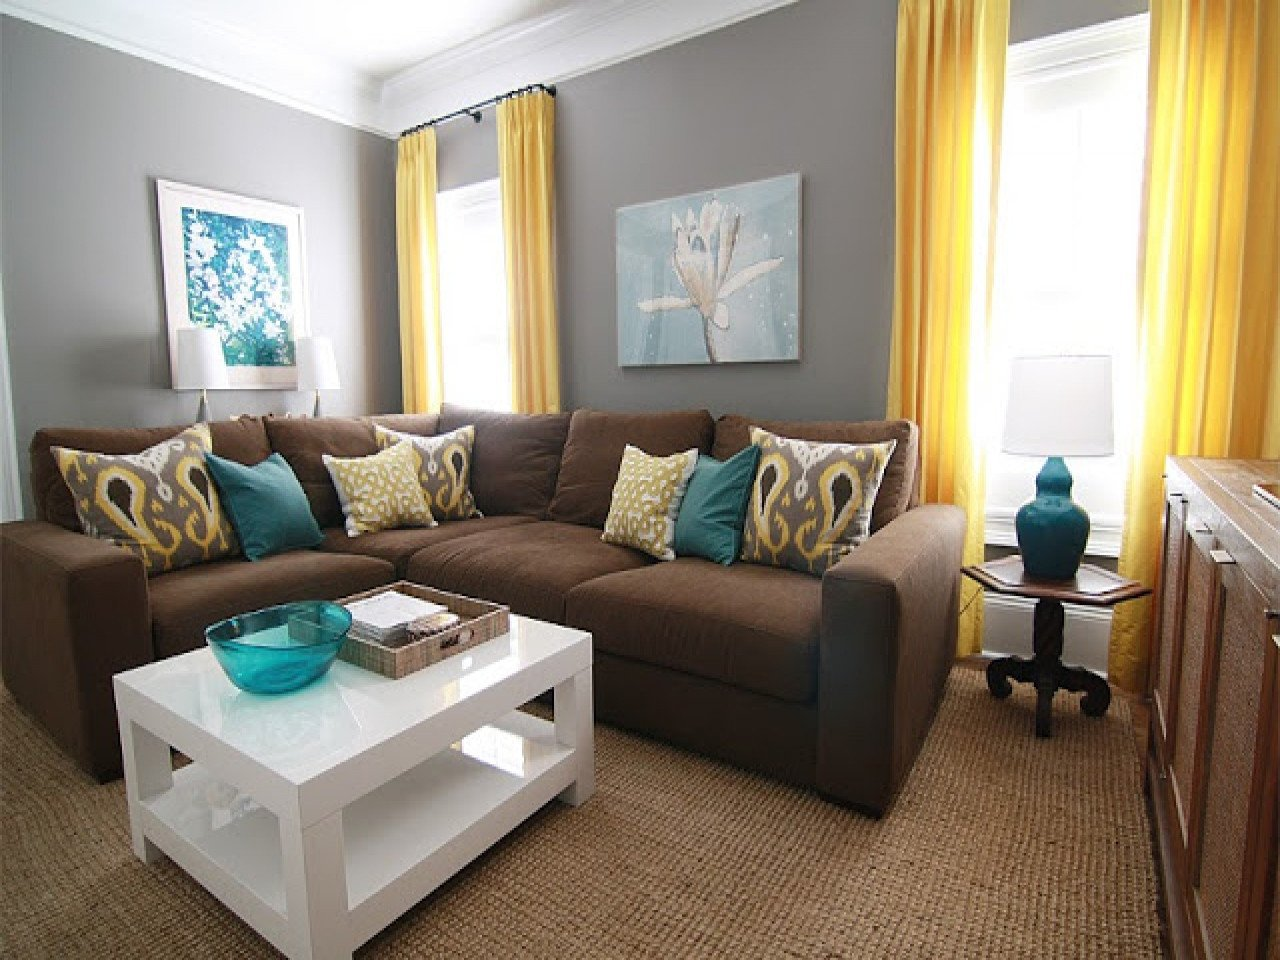 Brown Living Room Decor Ideas Teal and Brown Living Room Decor Zion Star